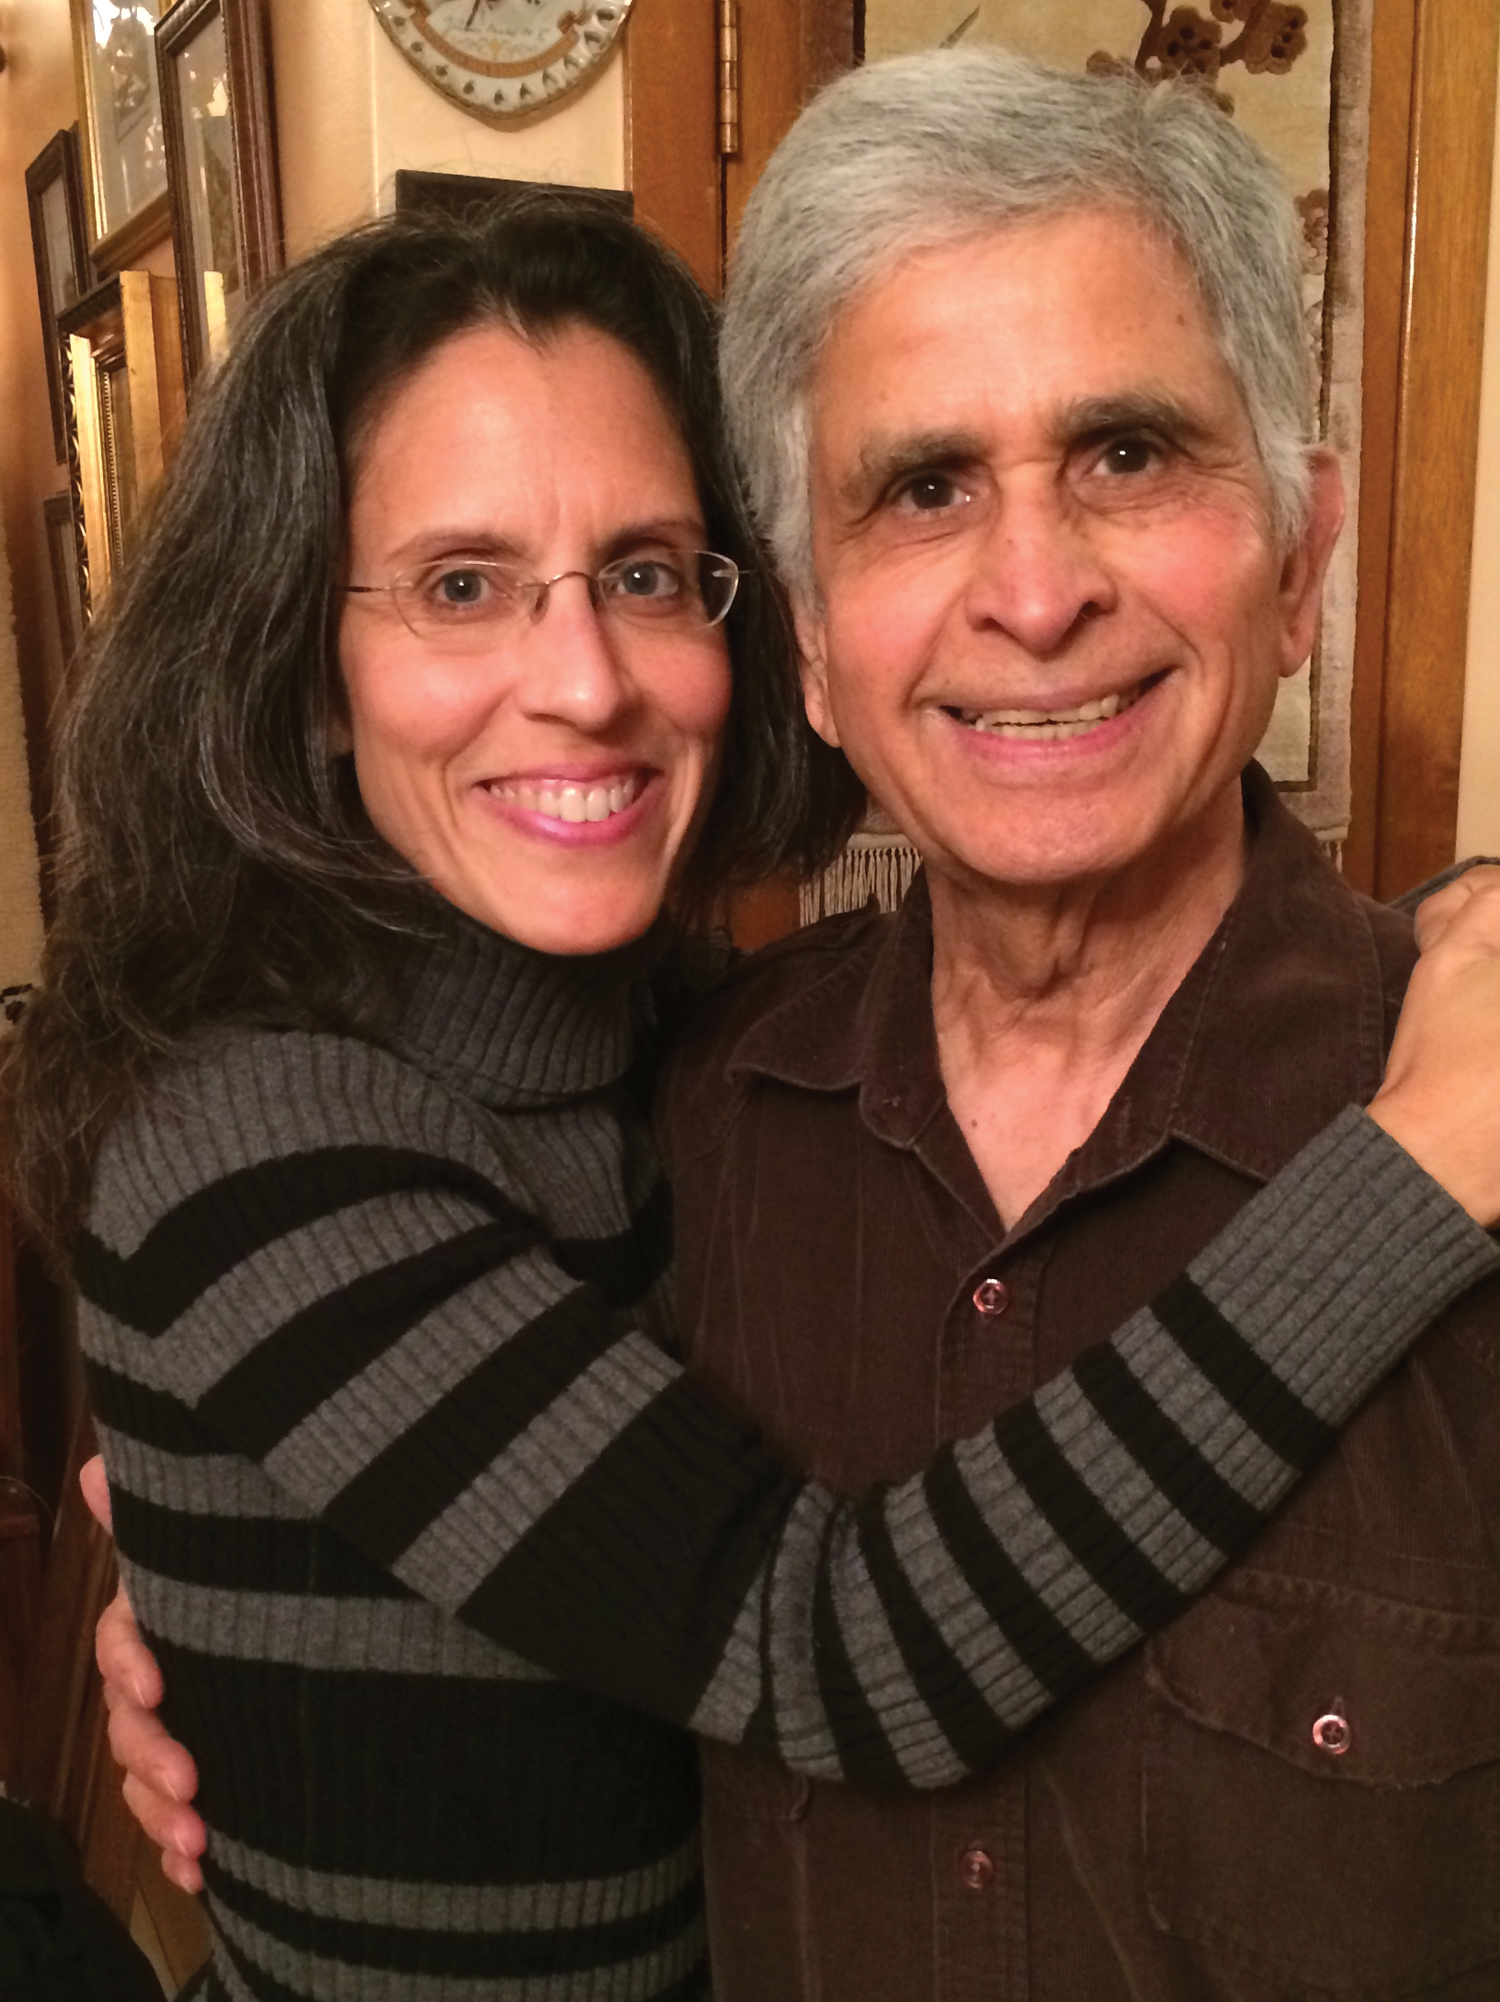 Indira Feaustal and her father Dr. Vijay Bhatnager